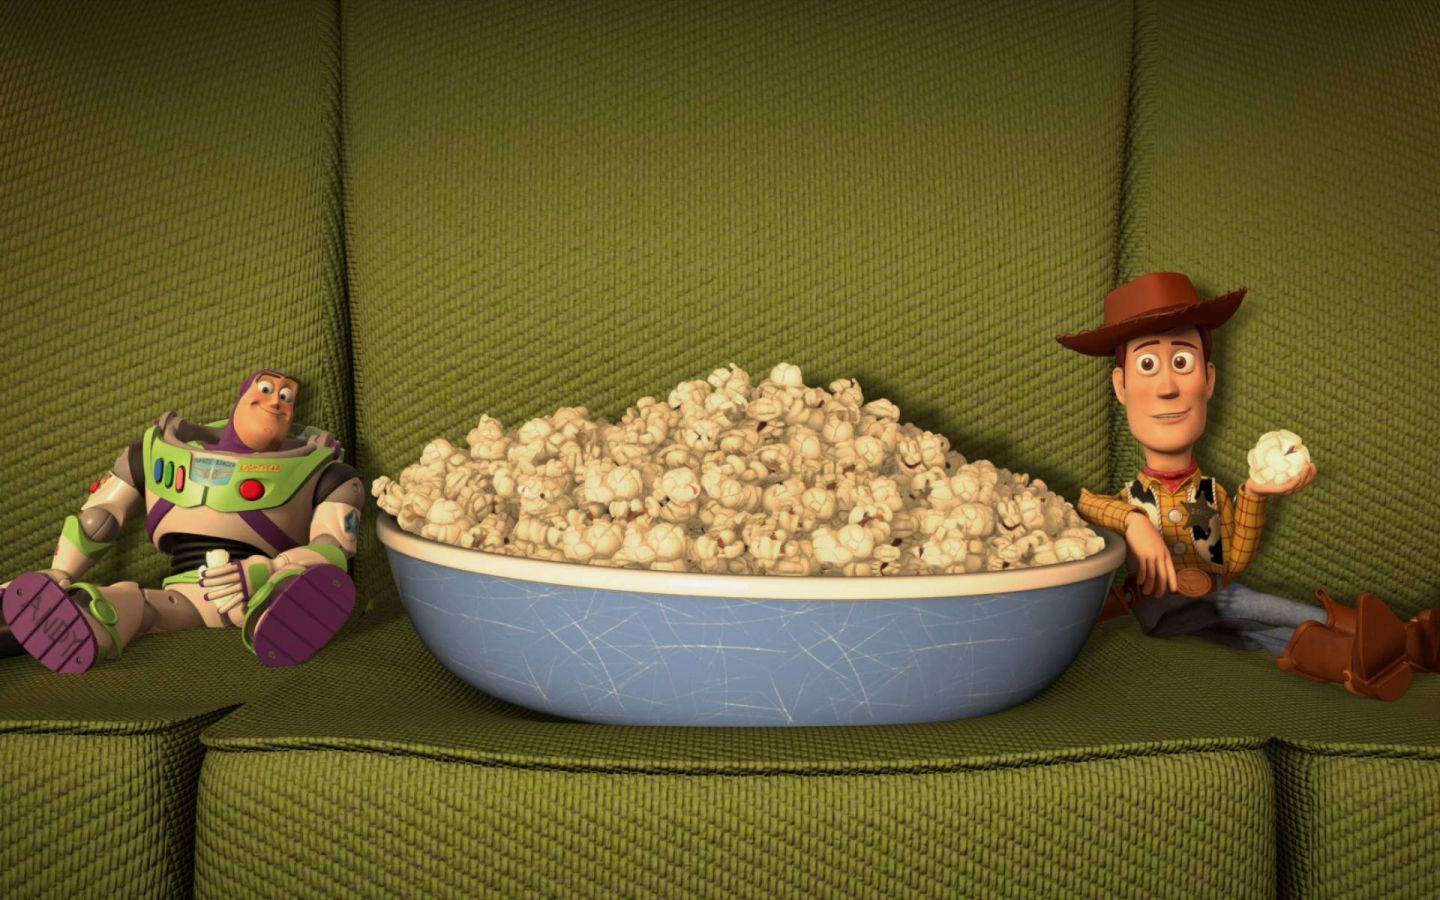 Buzz And Woody Eating Popcorn Wallpaper 1440x900